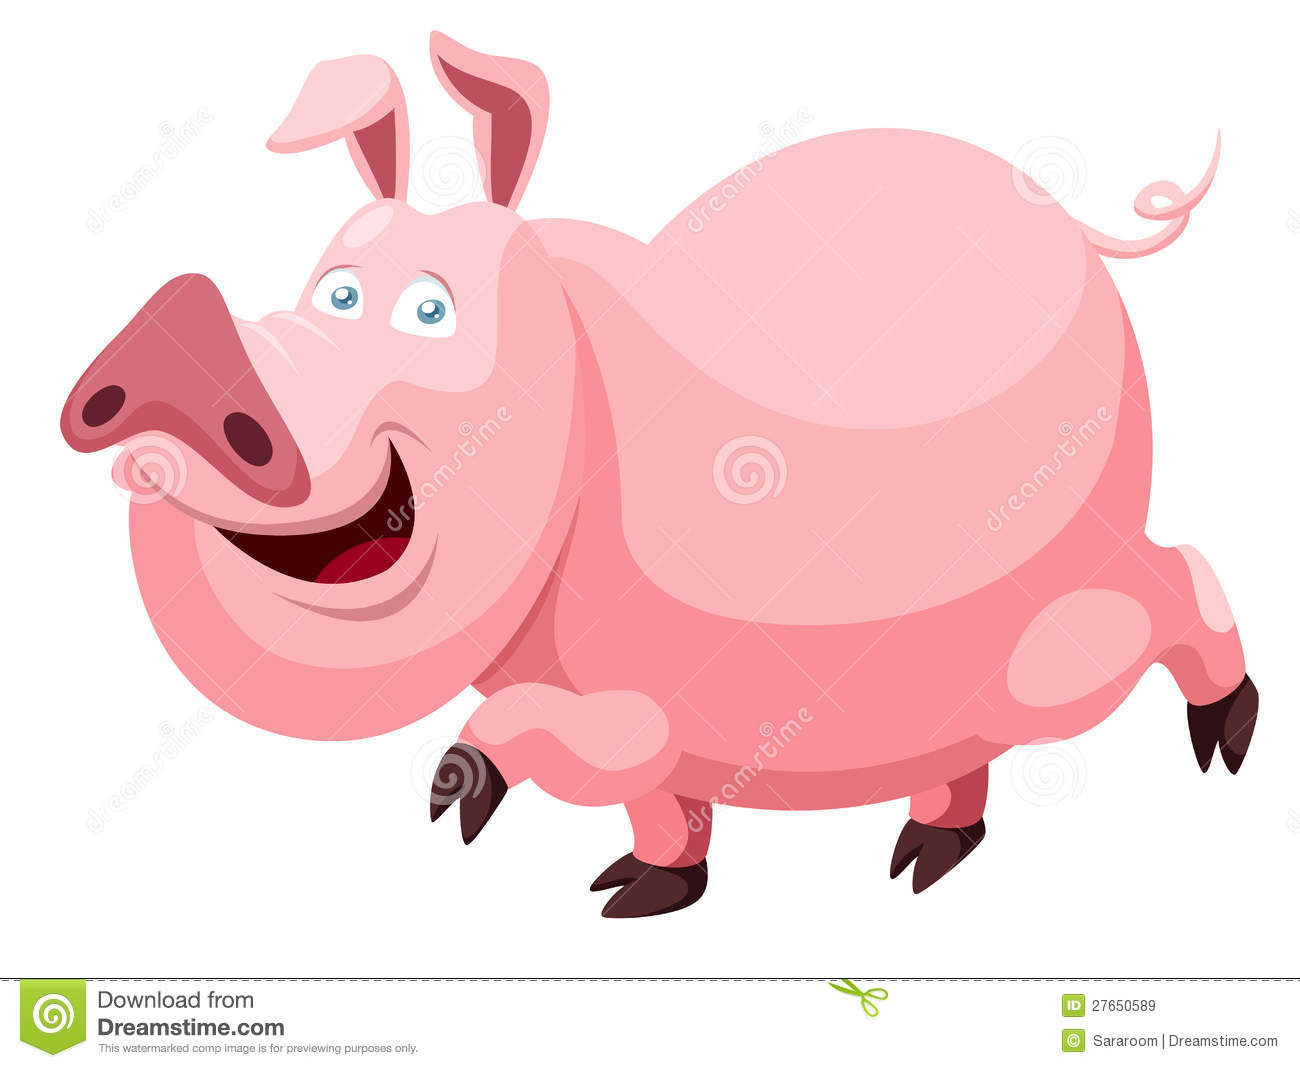 Cartoon Pig Royalty Free Stock Images - Image: 27650589